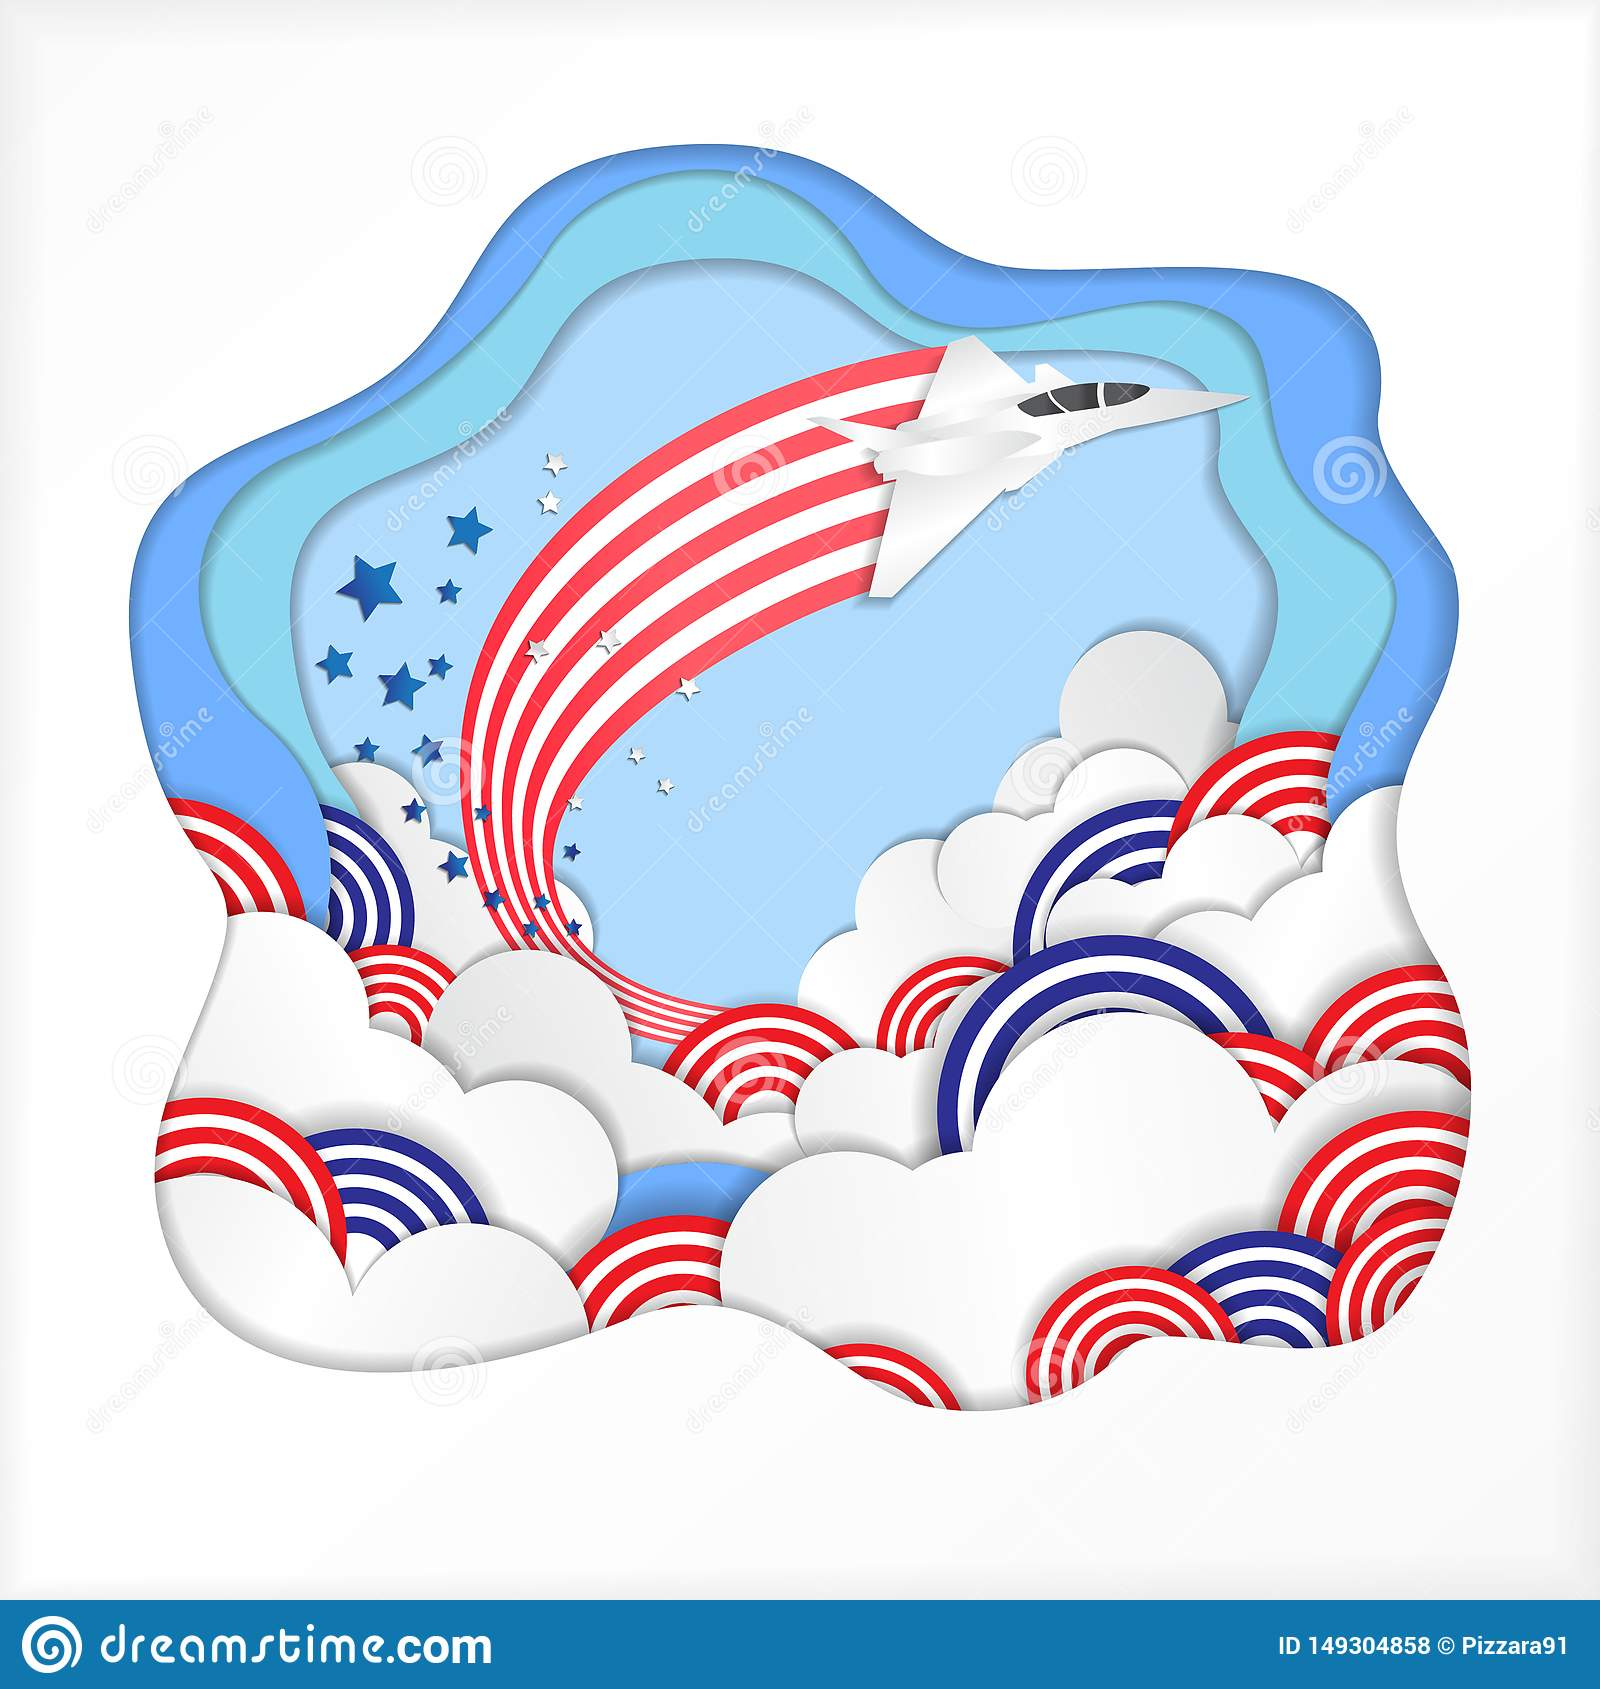 America independence day celebration vector illustrate